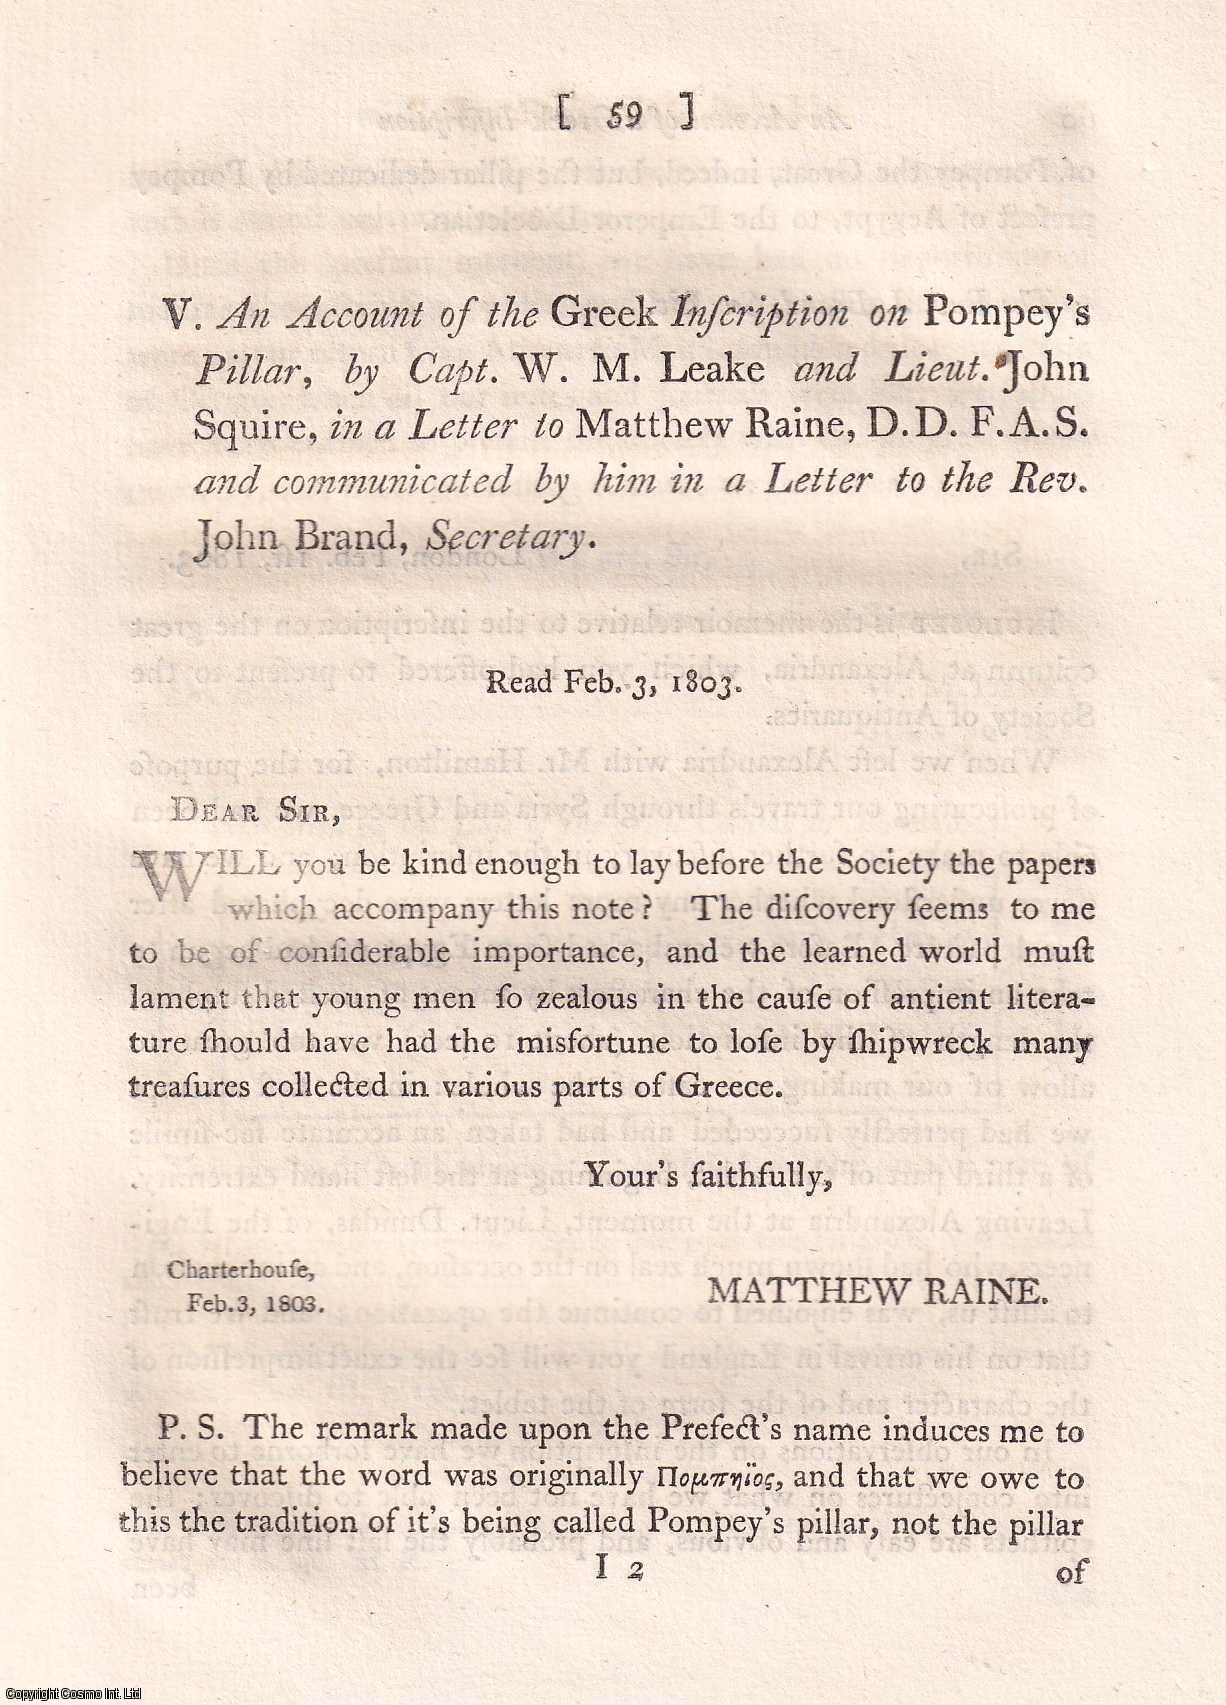 CAPT. W.M. LEAKE AND LIEUT. JOHN SQUIRE - An Account of the Greek Inscription on Pompey's Pillar.